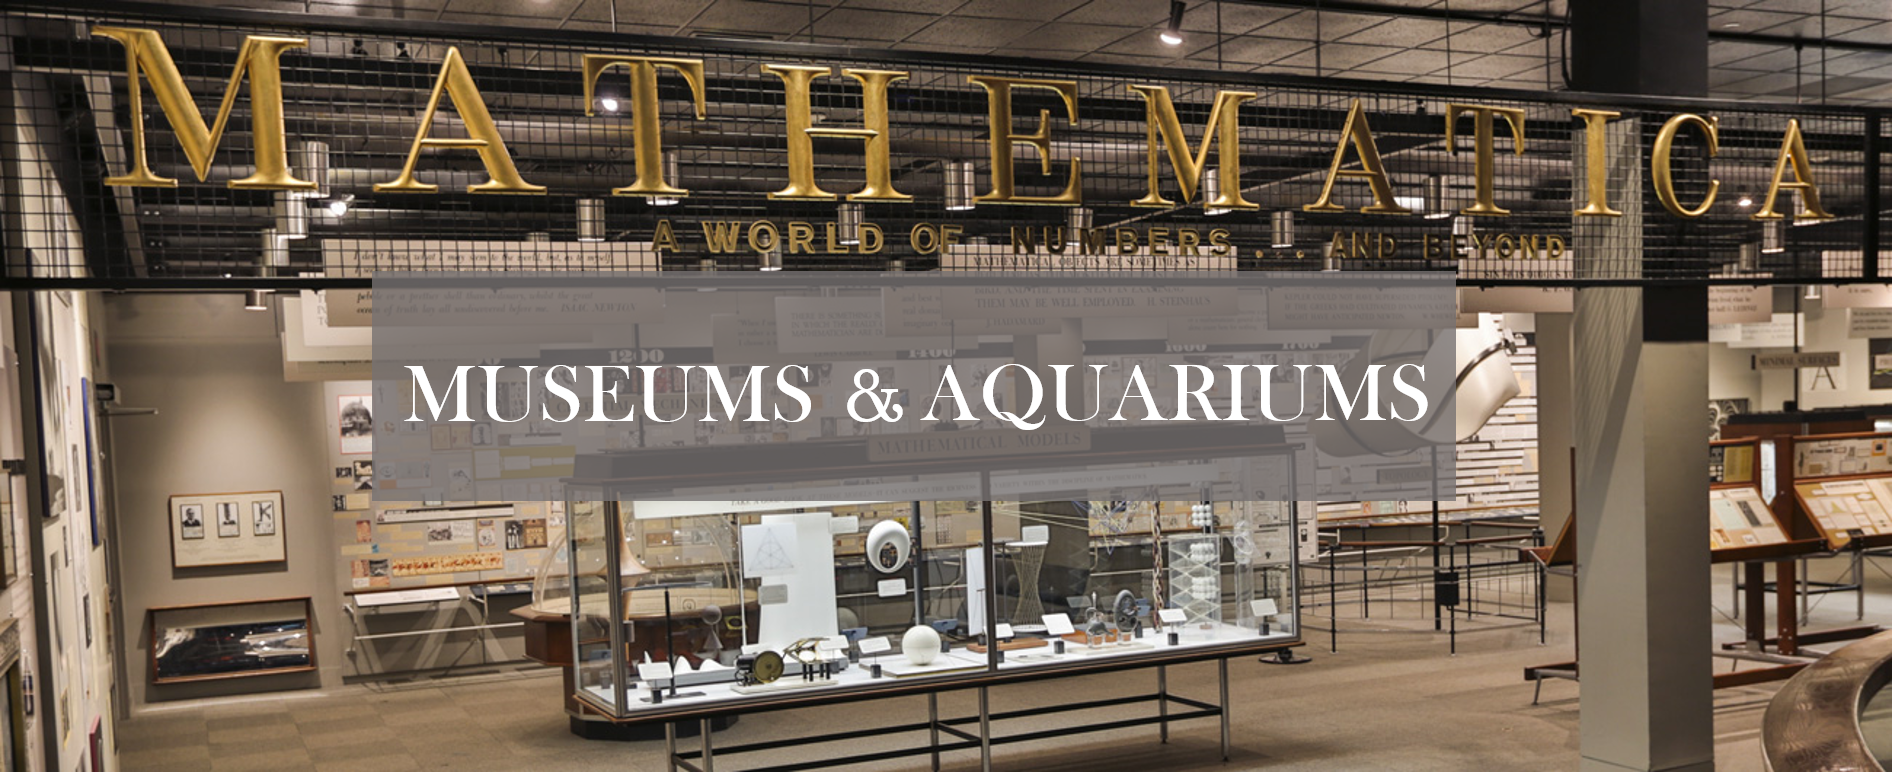 museums and aquariums title